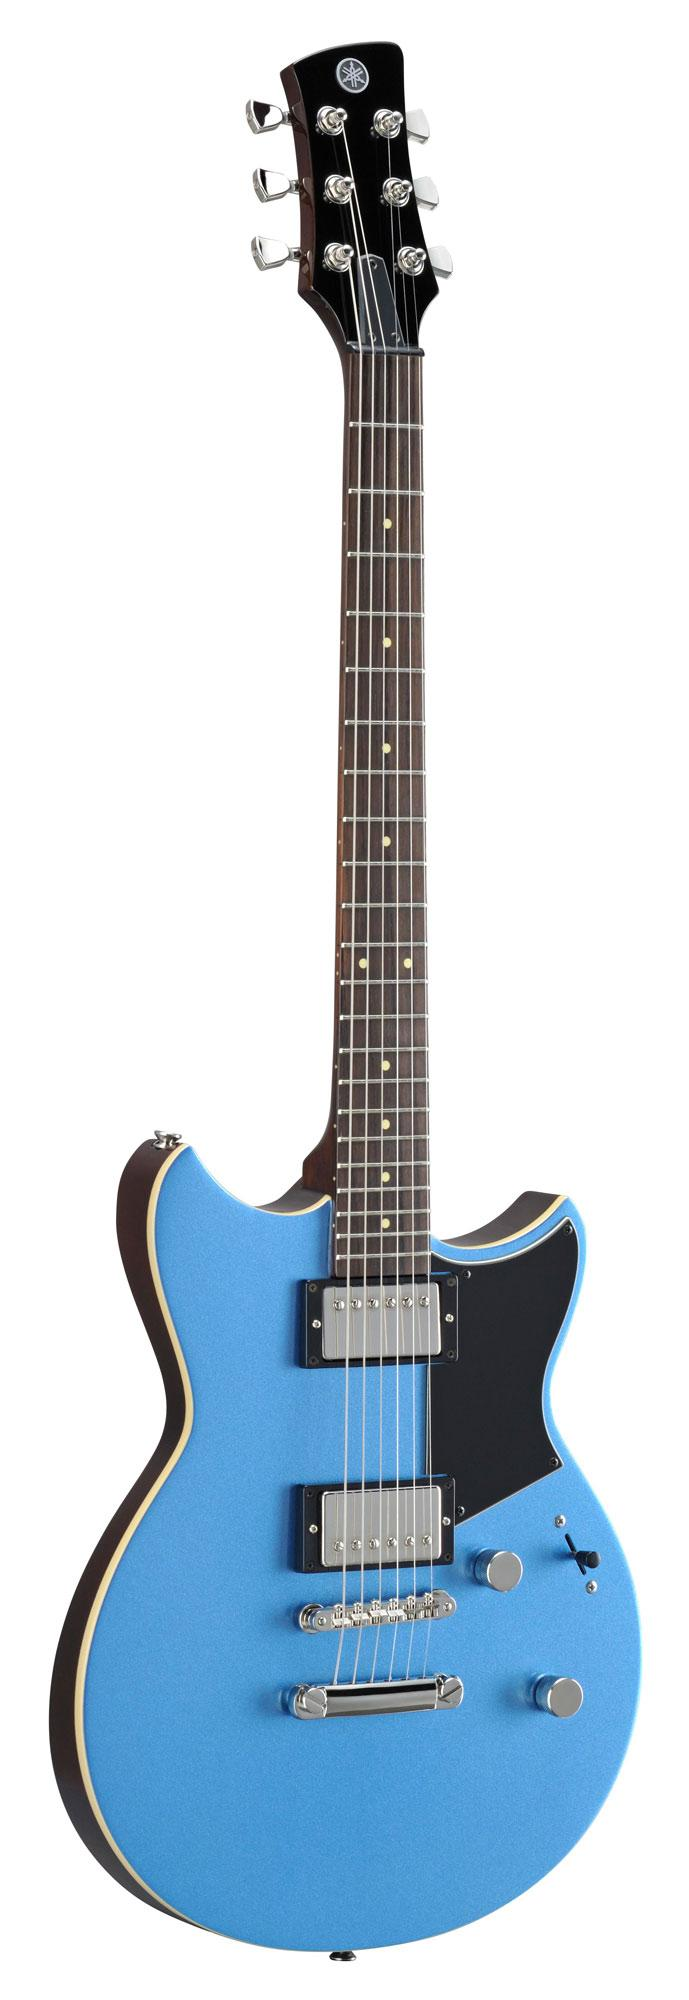 yamaha rs420ftb revstar e gitarre factory blue. Black Bedroom Furniture Sets. Home Design Ideas